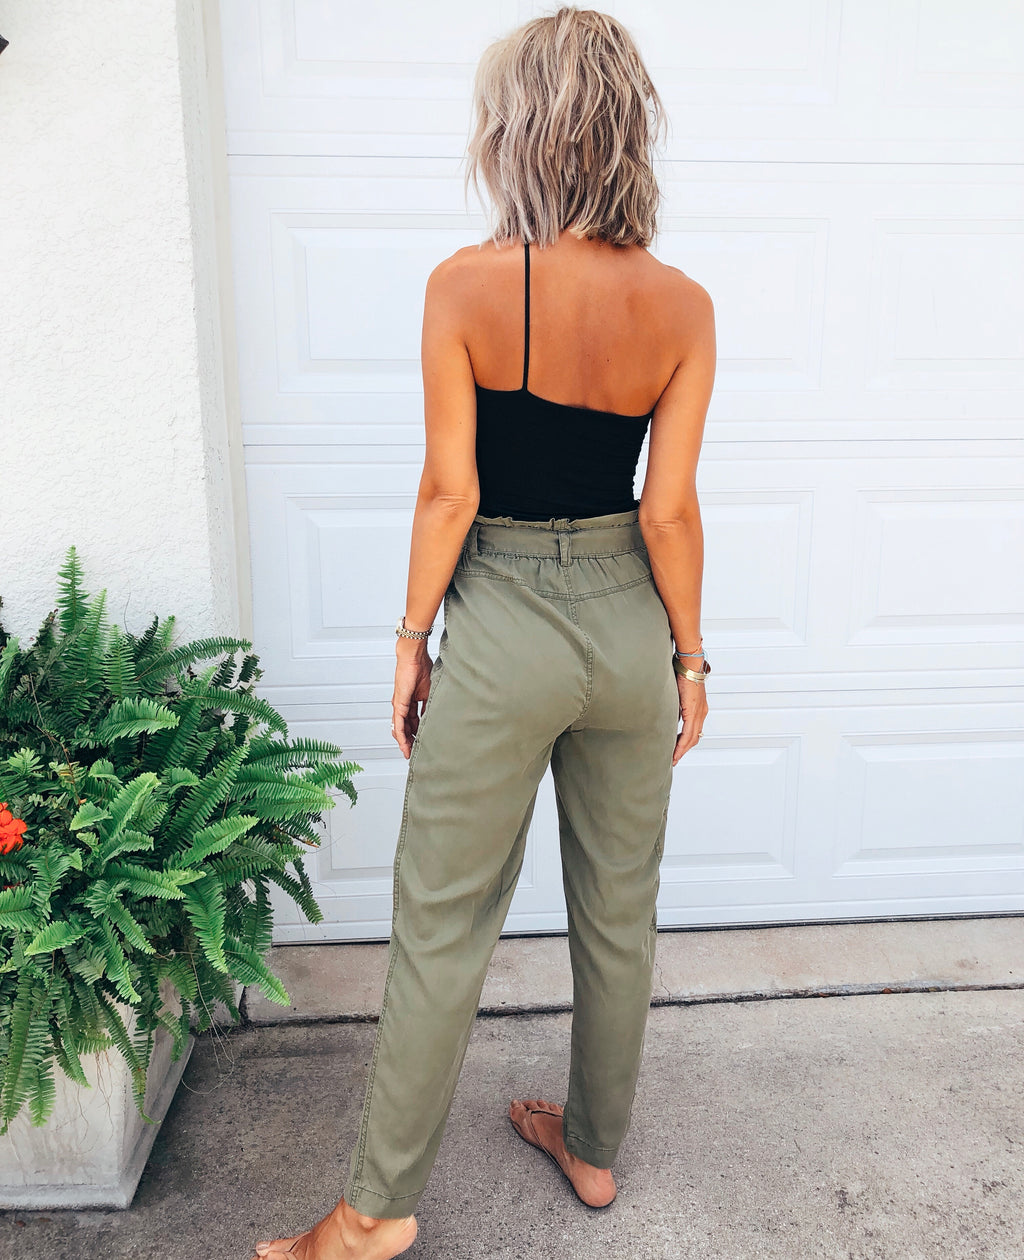 The Edgy One Shoulder Top